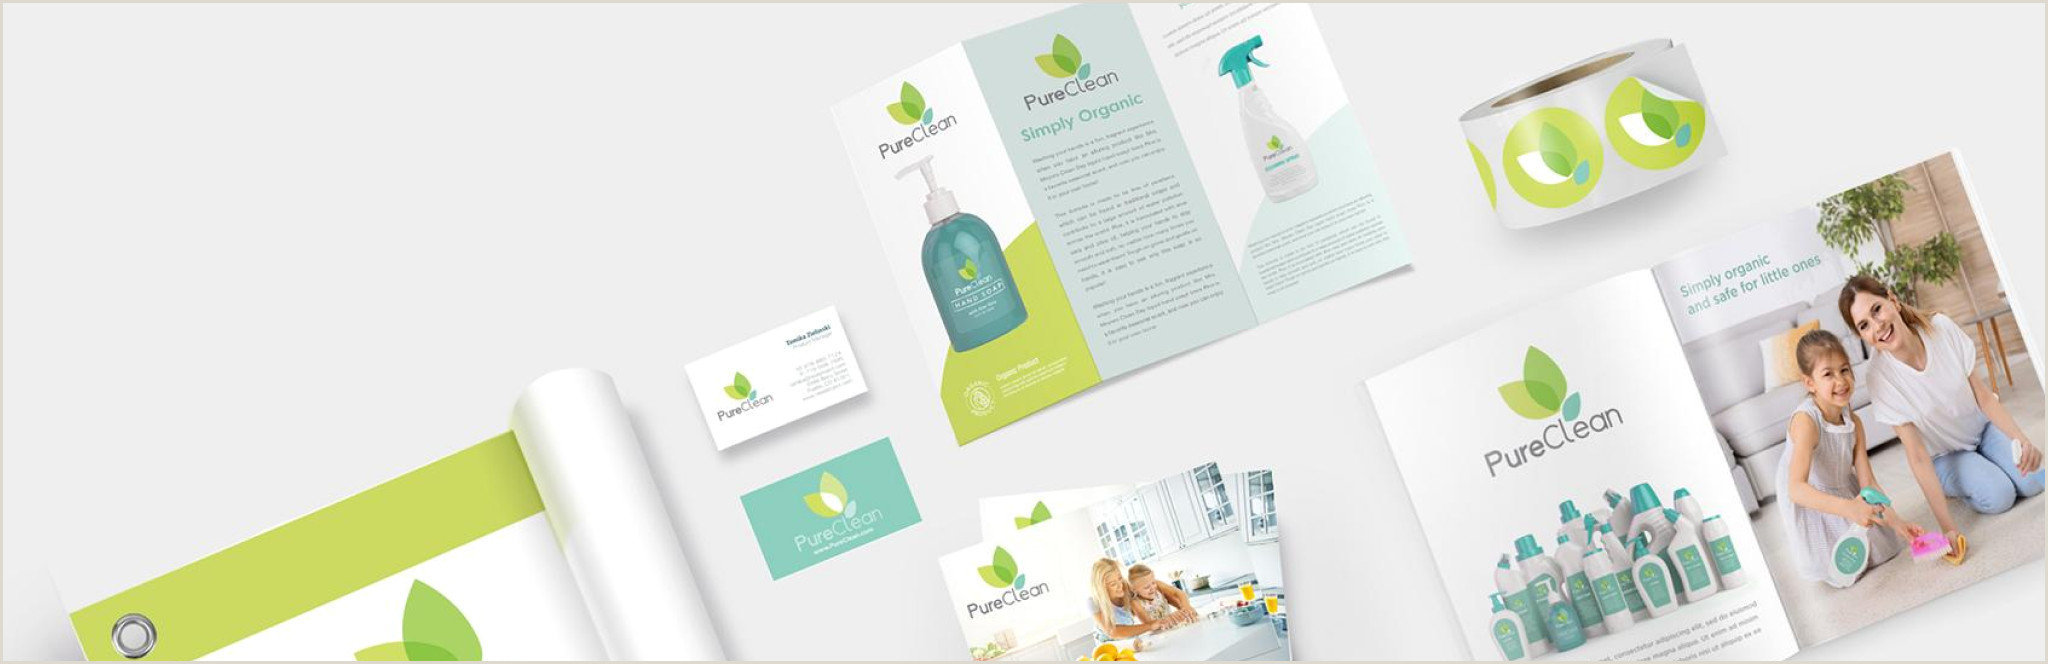 Best Business Cards Website Printplace High Quality Line Printing Services